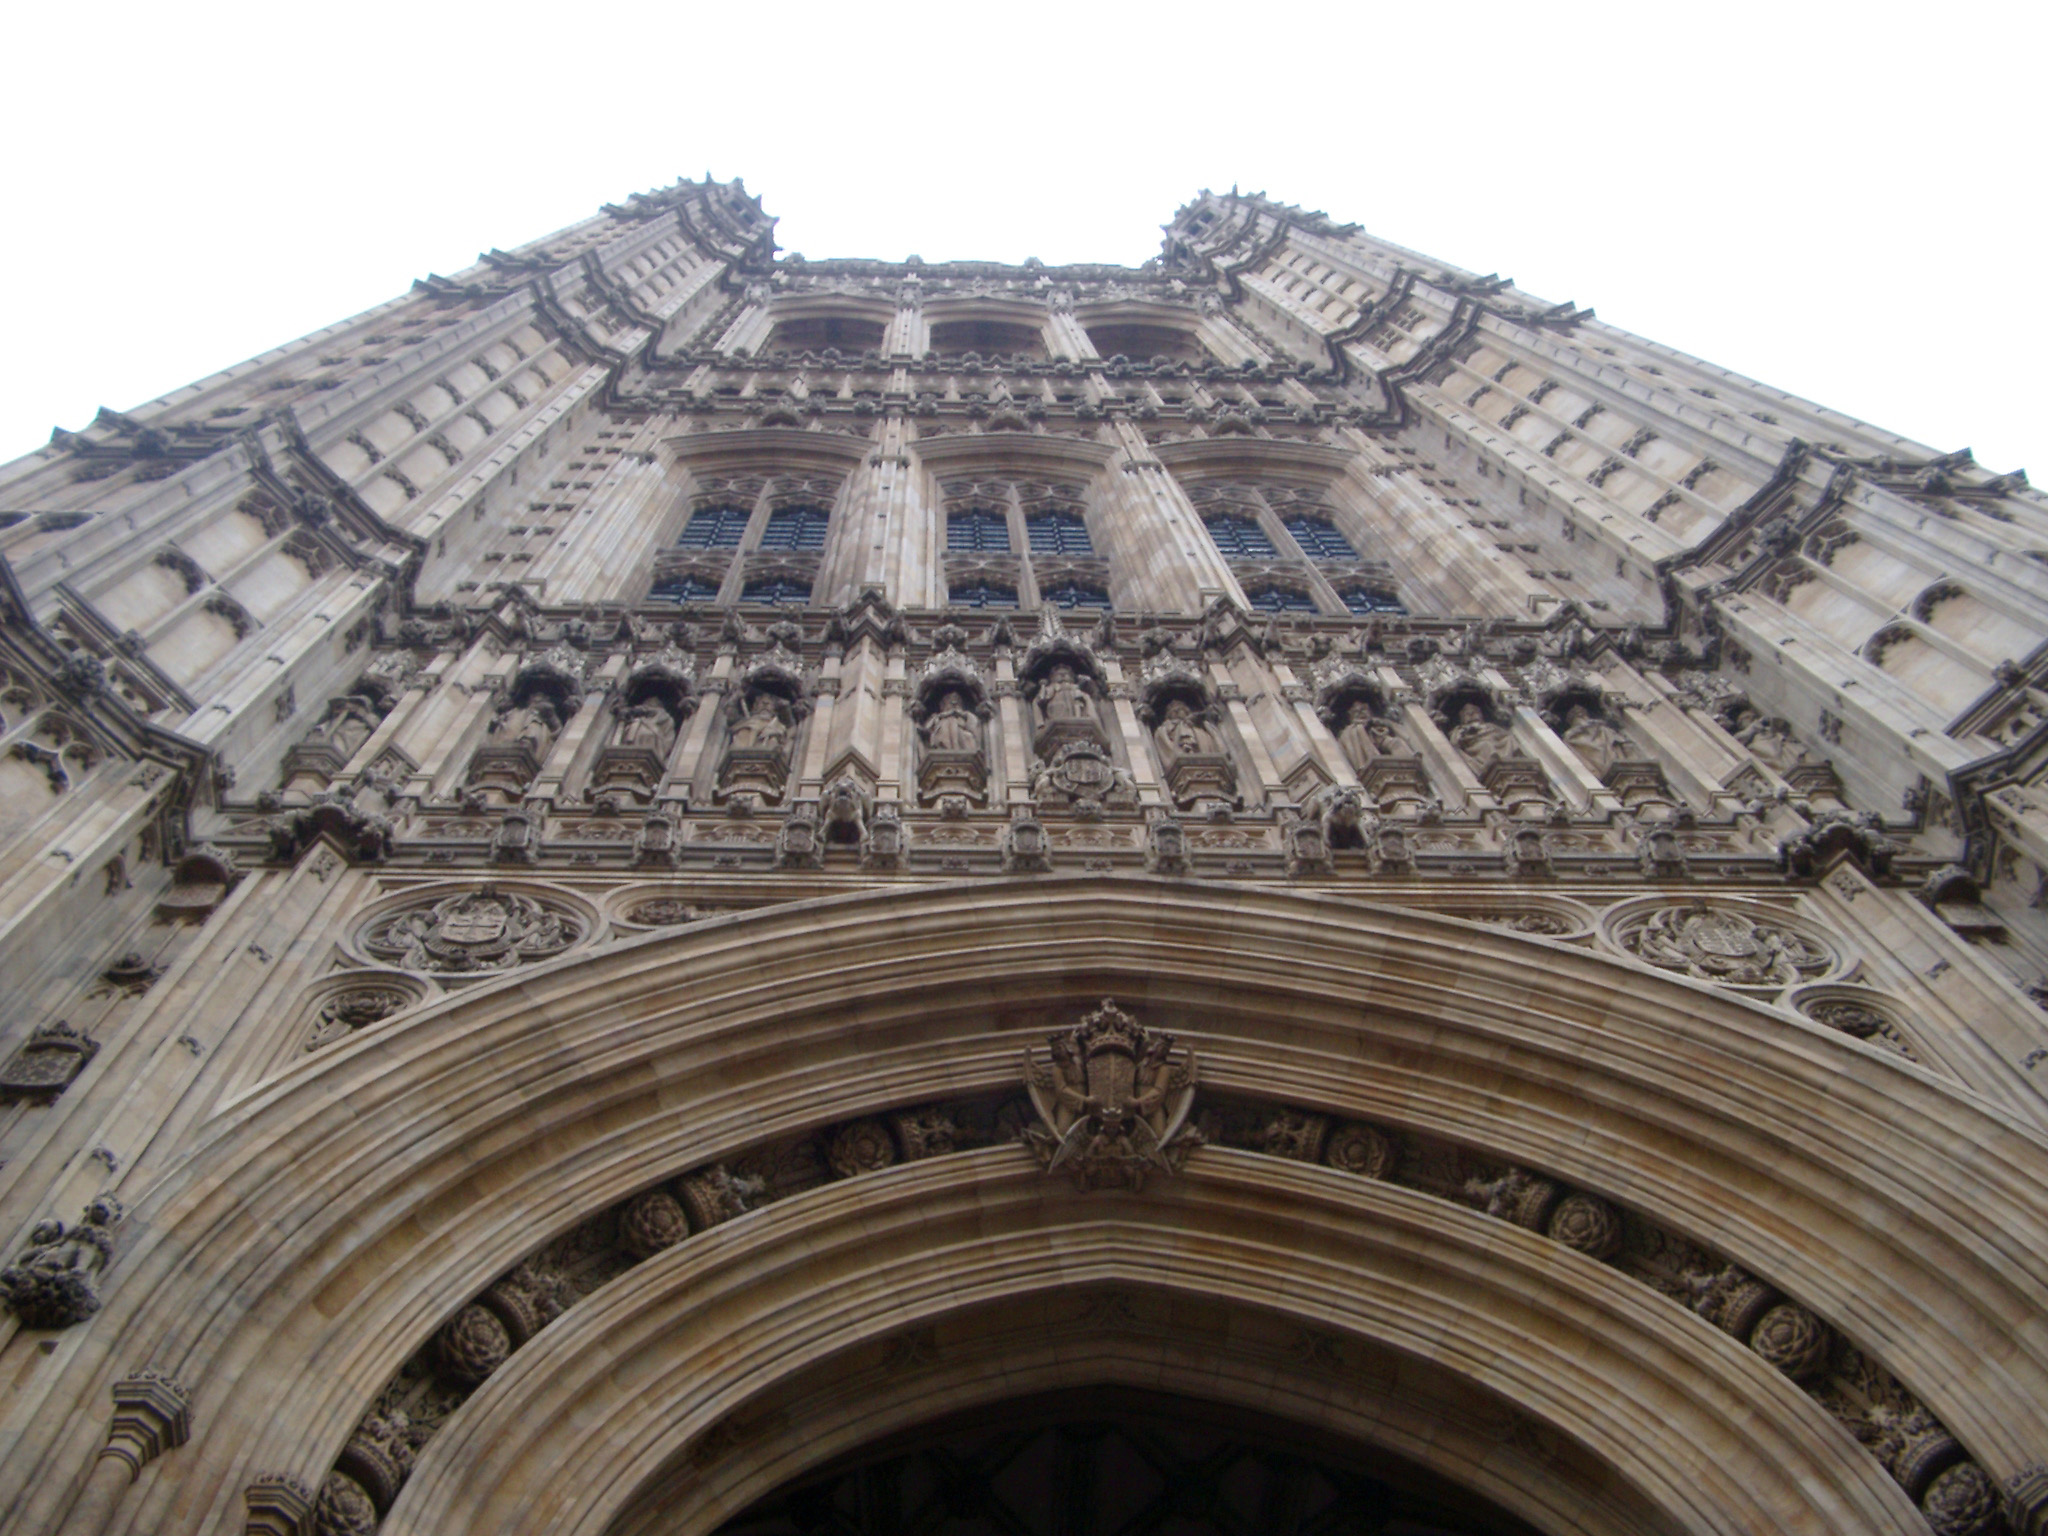 Low angle view of the victoria tower, palace of westminster, london, the seat of the UK government